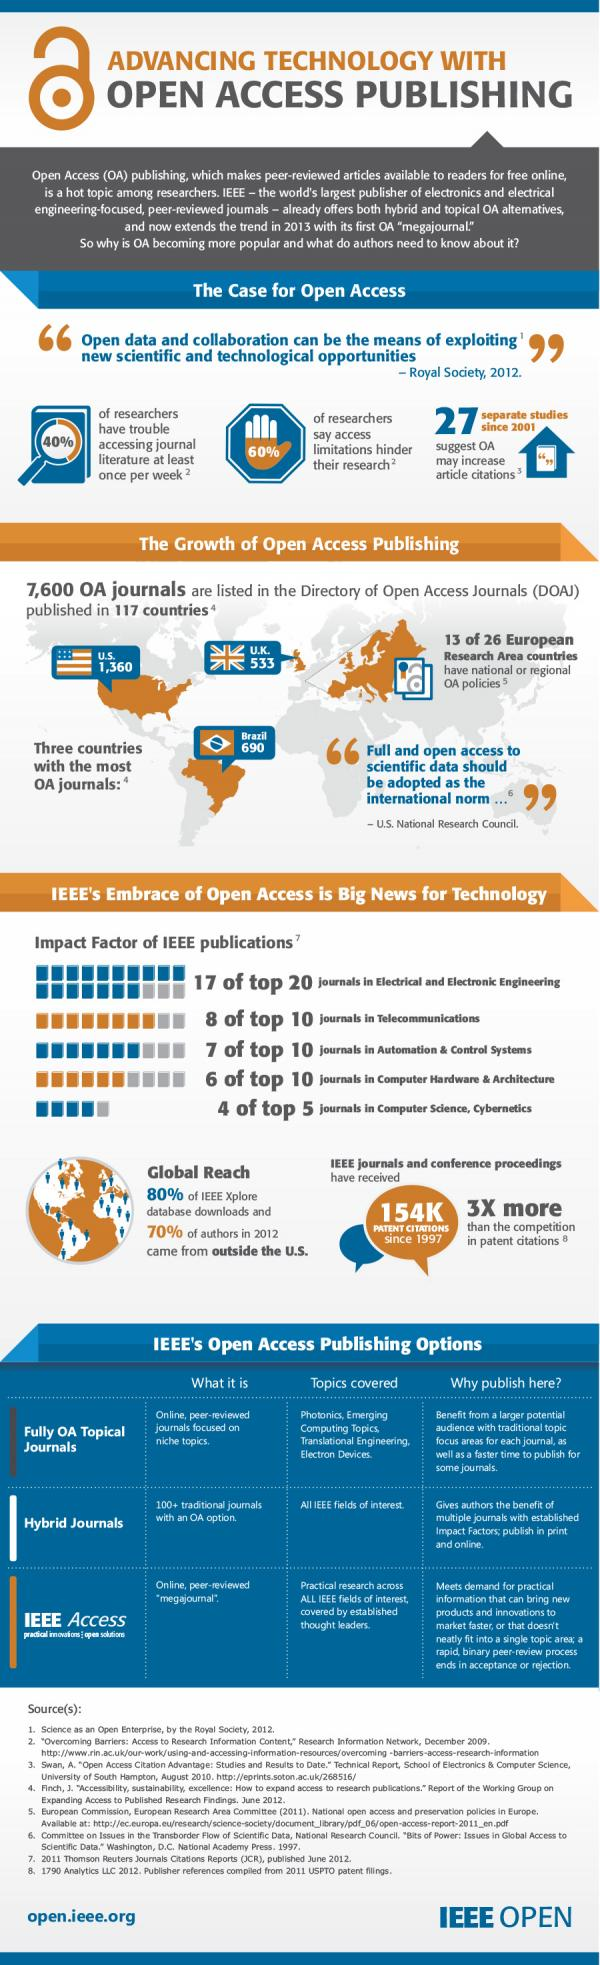 Open Access Publishing infographic (IEEE)